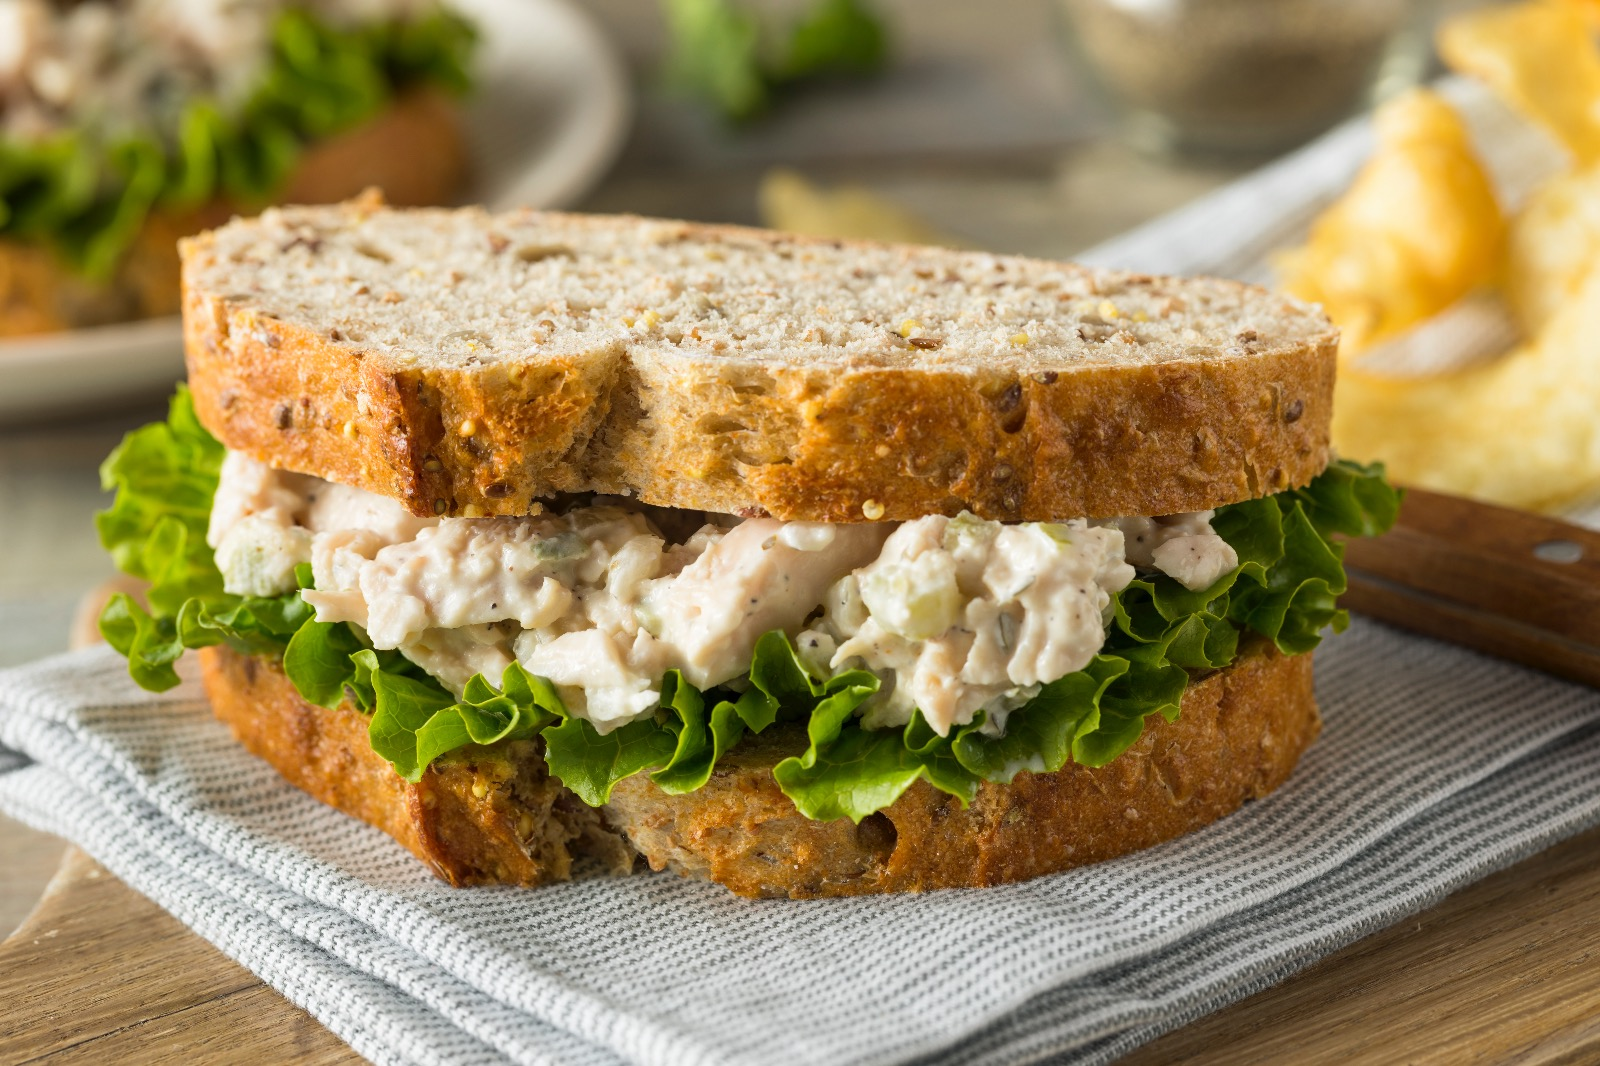 Lunch Recipe: How To Make The Best Chicken Salad Ever - Beck & Bulow